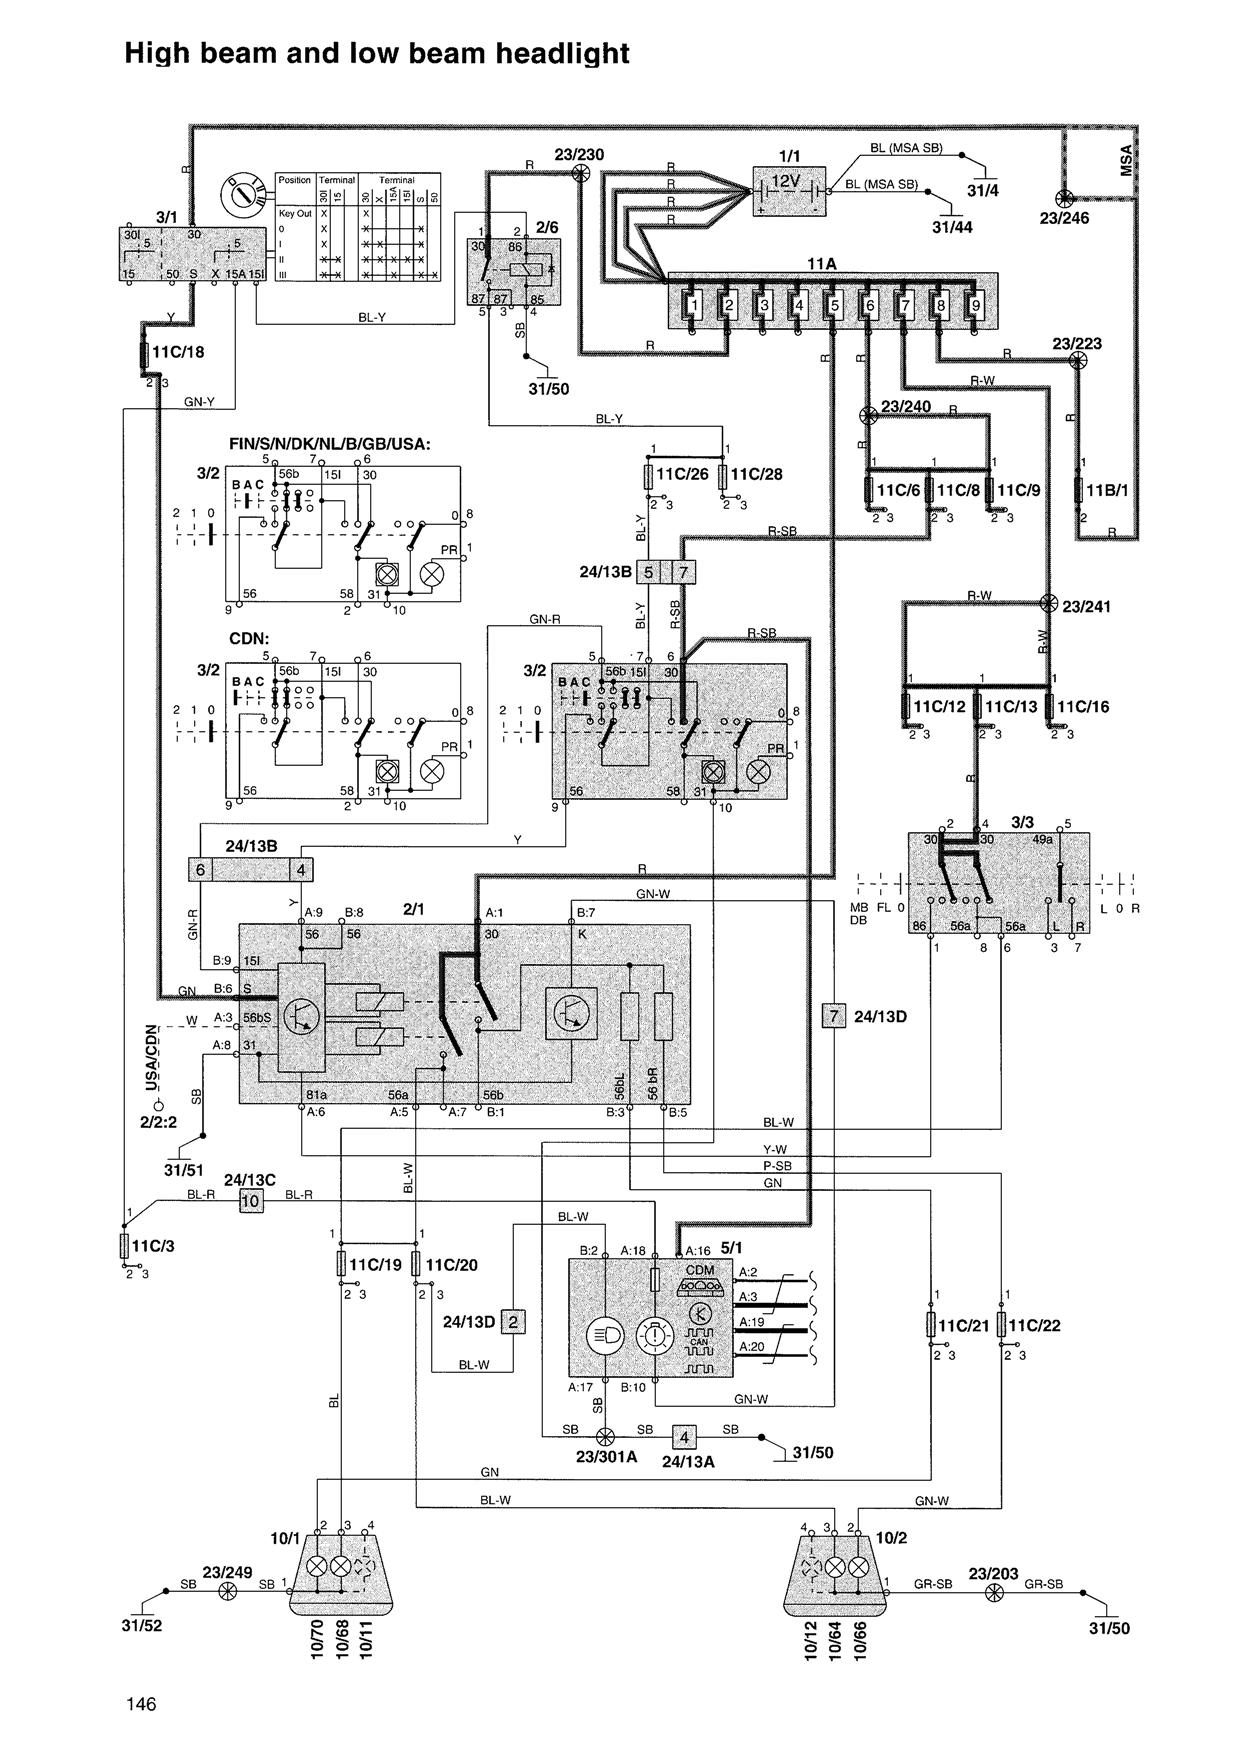 vn volvo wiring diagrams volvo car wiring diagram volvo wiring diagrams online volvo wiring diagrams volvo image wiring diagram